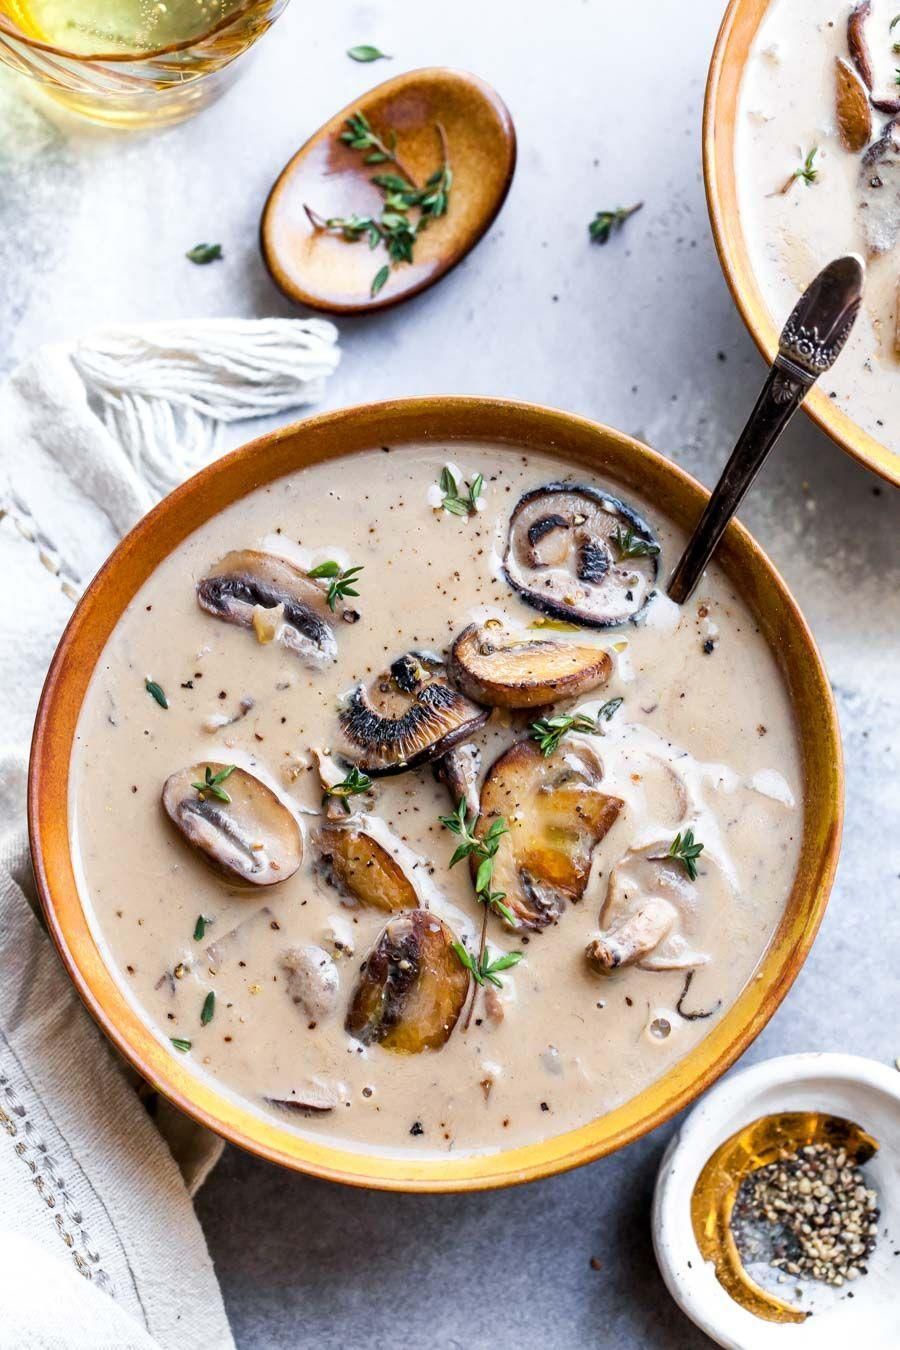 """<p>The classic, reinvented — blitzed cashews stand in for traditional dairy in this bowl-licking good soup. Jamie Vespa, MS, RD, suggests a blend of shiitake and cremini mushrooms for the best bowl possible.</p><p><em><em><a href=""""https://dishingouthealth.com/vegan-cream-of-mushroom-soup/"""" rel=""""nofollow noopener"""" target=""""_blank"""" data-ylk=""""slk:Get the recipe from Dishing Out Health »"""" class=""""link rapid-noclick-resp"""">Get the recipe from Dishing Out Health »</a></em></em><br></p>"""